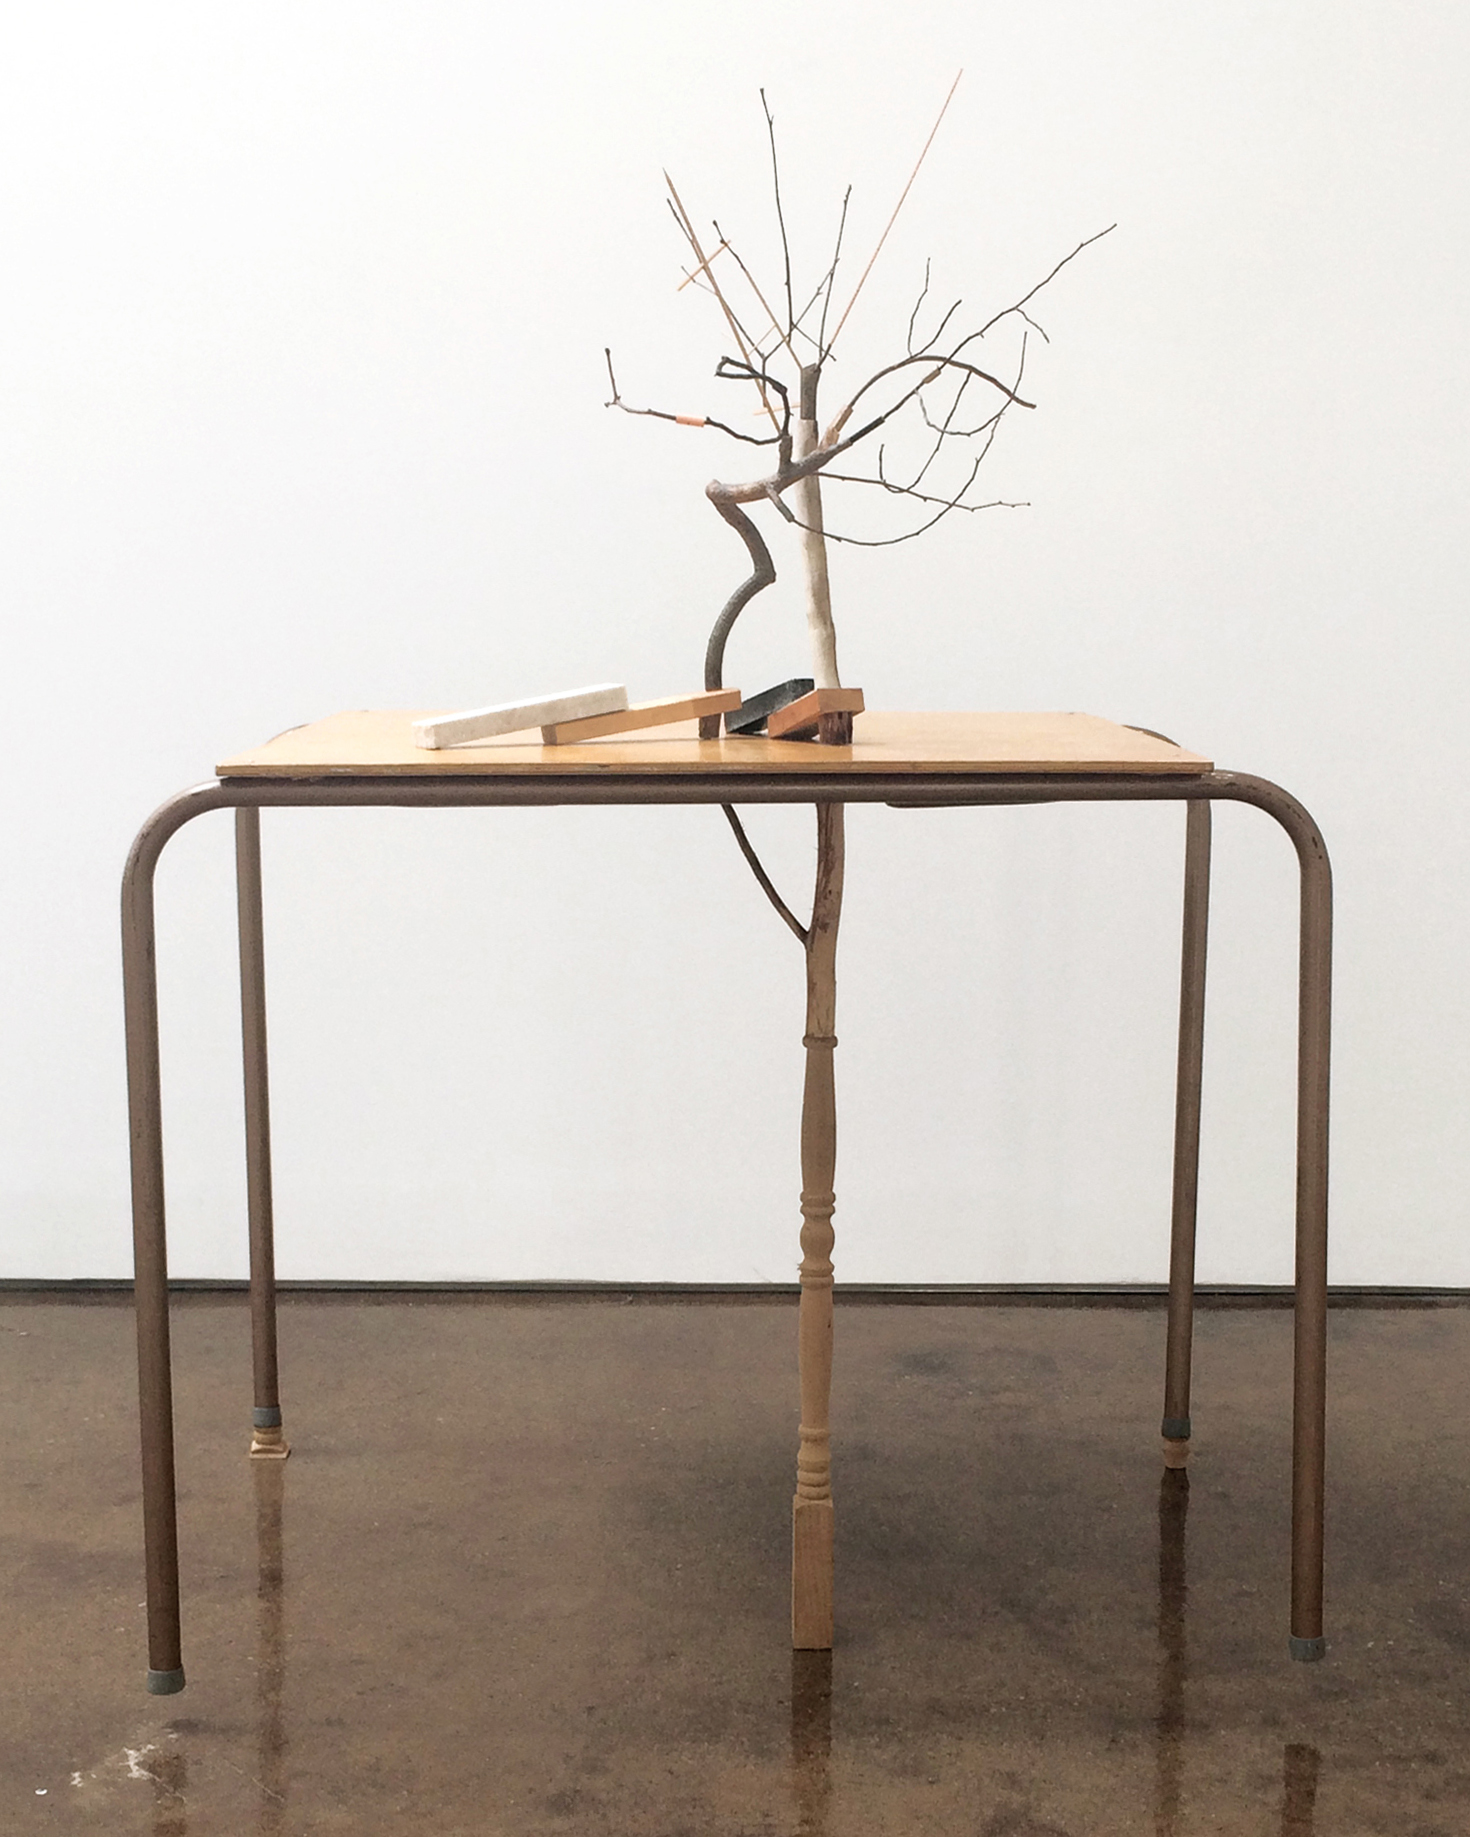 leter arber  2017 twigs, mixed media wood products, marble, granite, table 52 x 37 x 30 inches